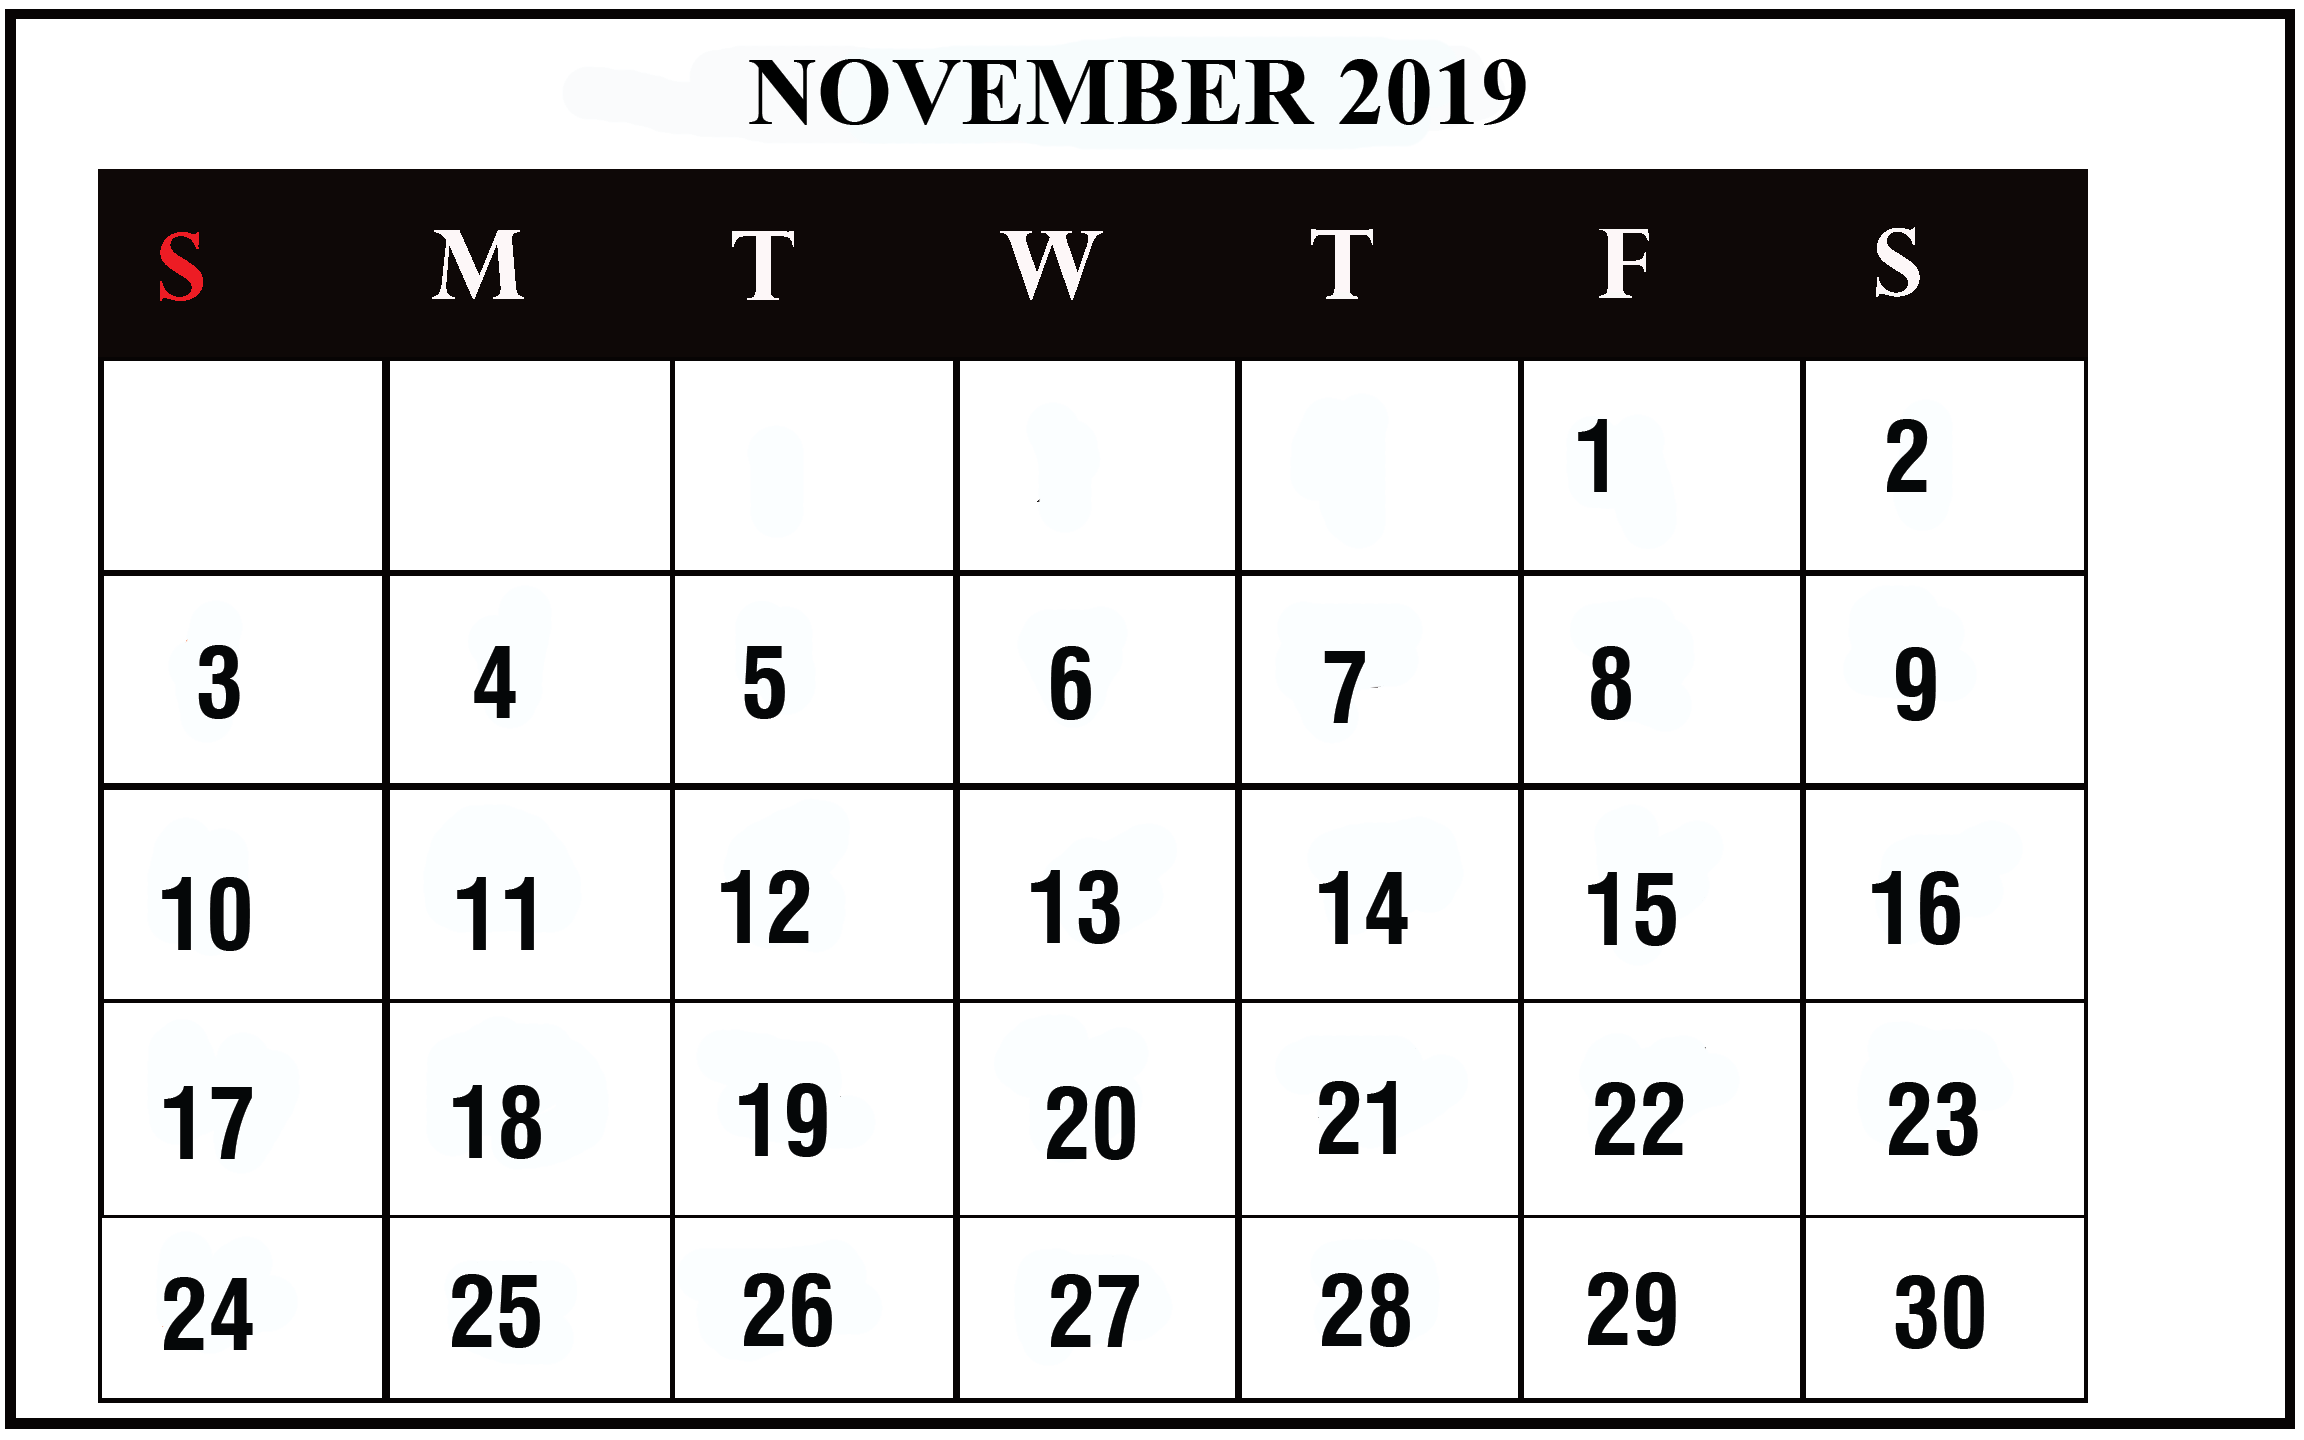 graphic about November Printable Calendar identify November 2019 Calendar Printable November Blank Calendar